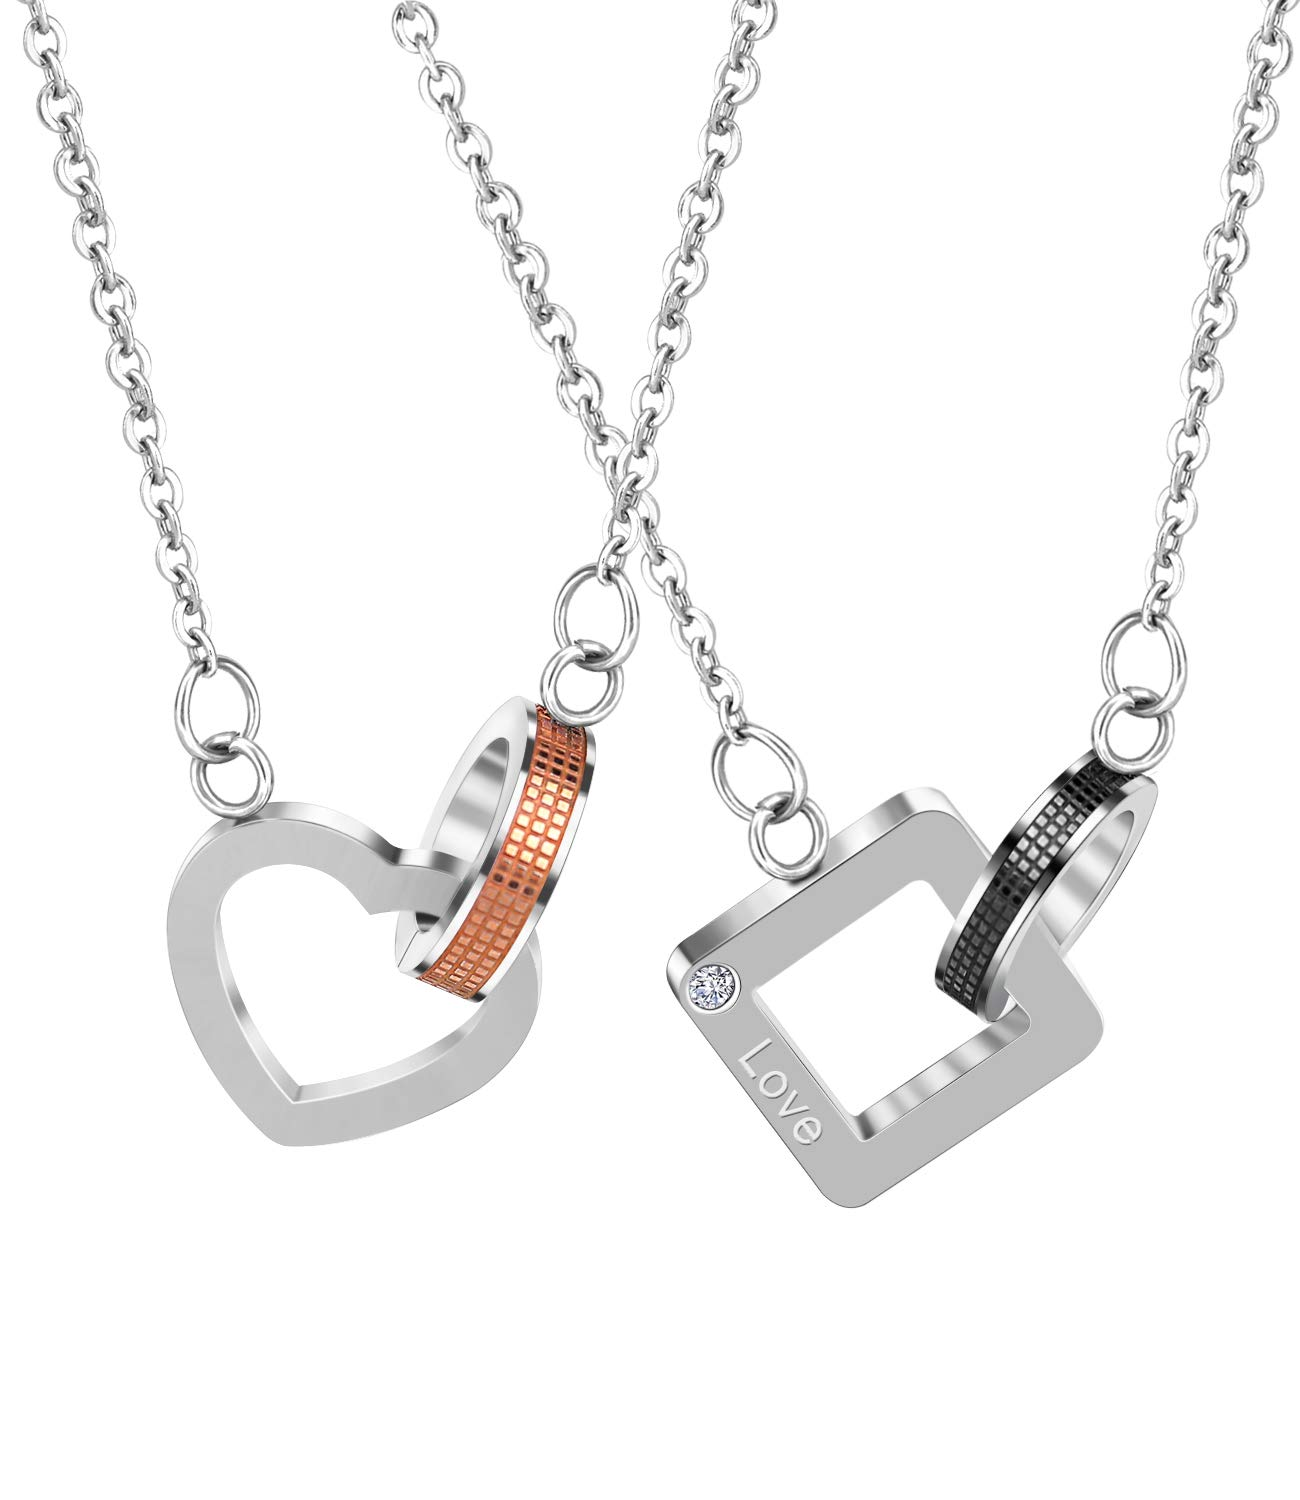 ANAZOZ Stainless Steel 2PCS Set Silver His and Hers Couple Cross Pendant Necklace